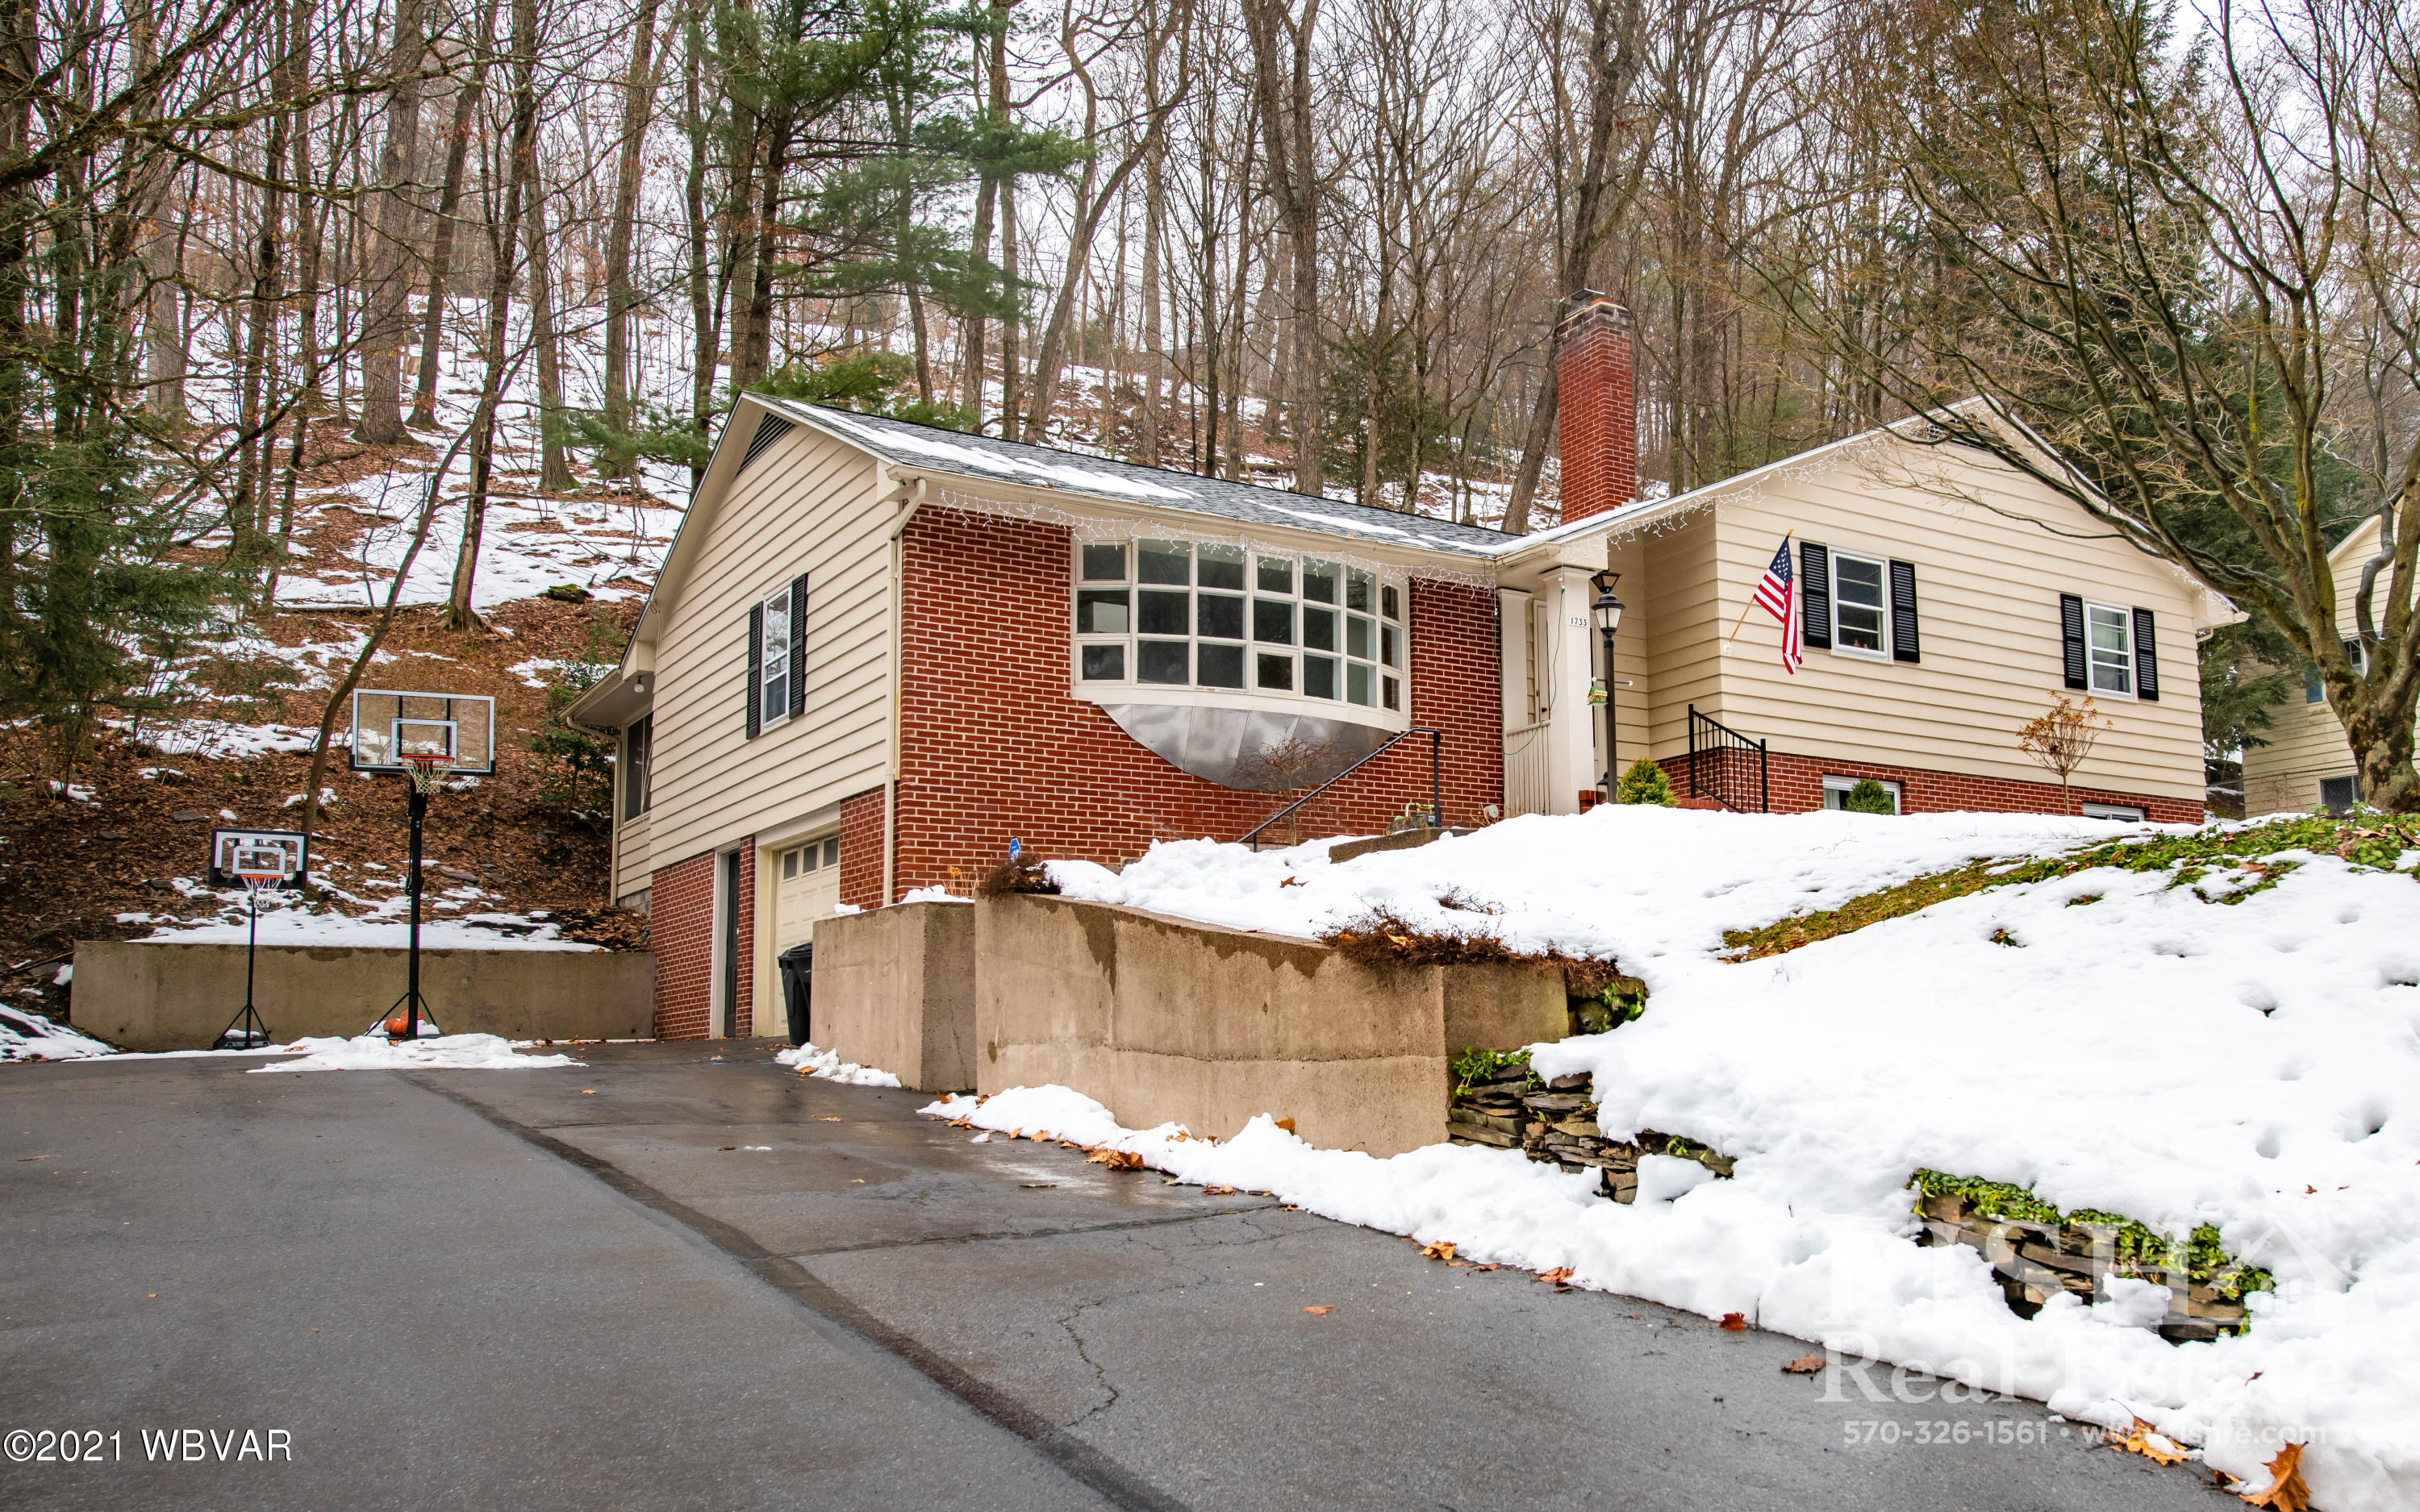 1733 RAVINE ROAD, Williamsport, PA 17701, 4 Bedrooms Bedrooms, ,3 BathroomsBathrooms,Residential,For sale,RAVINE,WB-91746